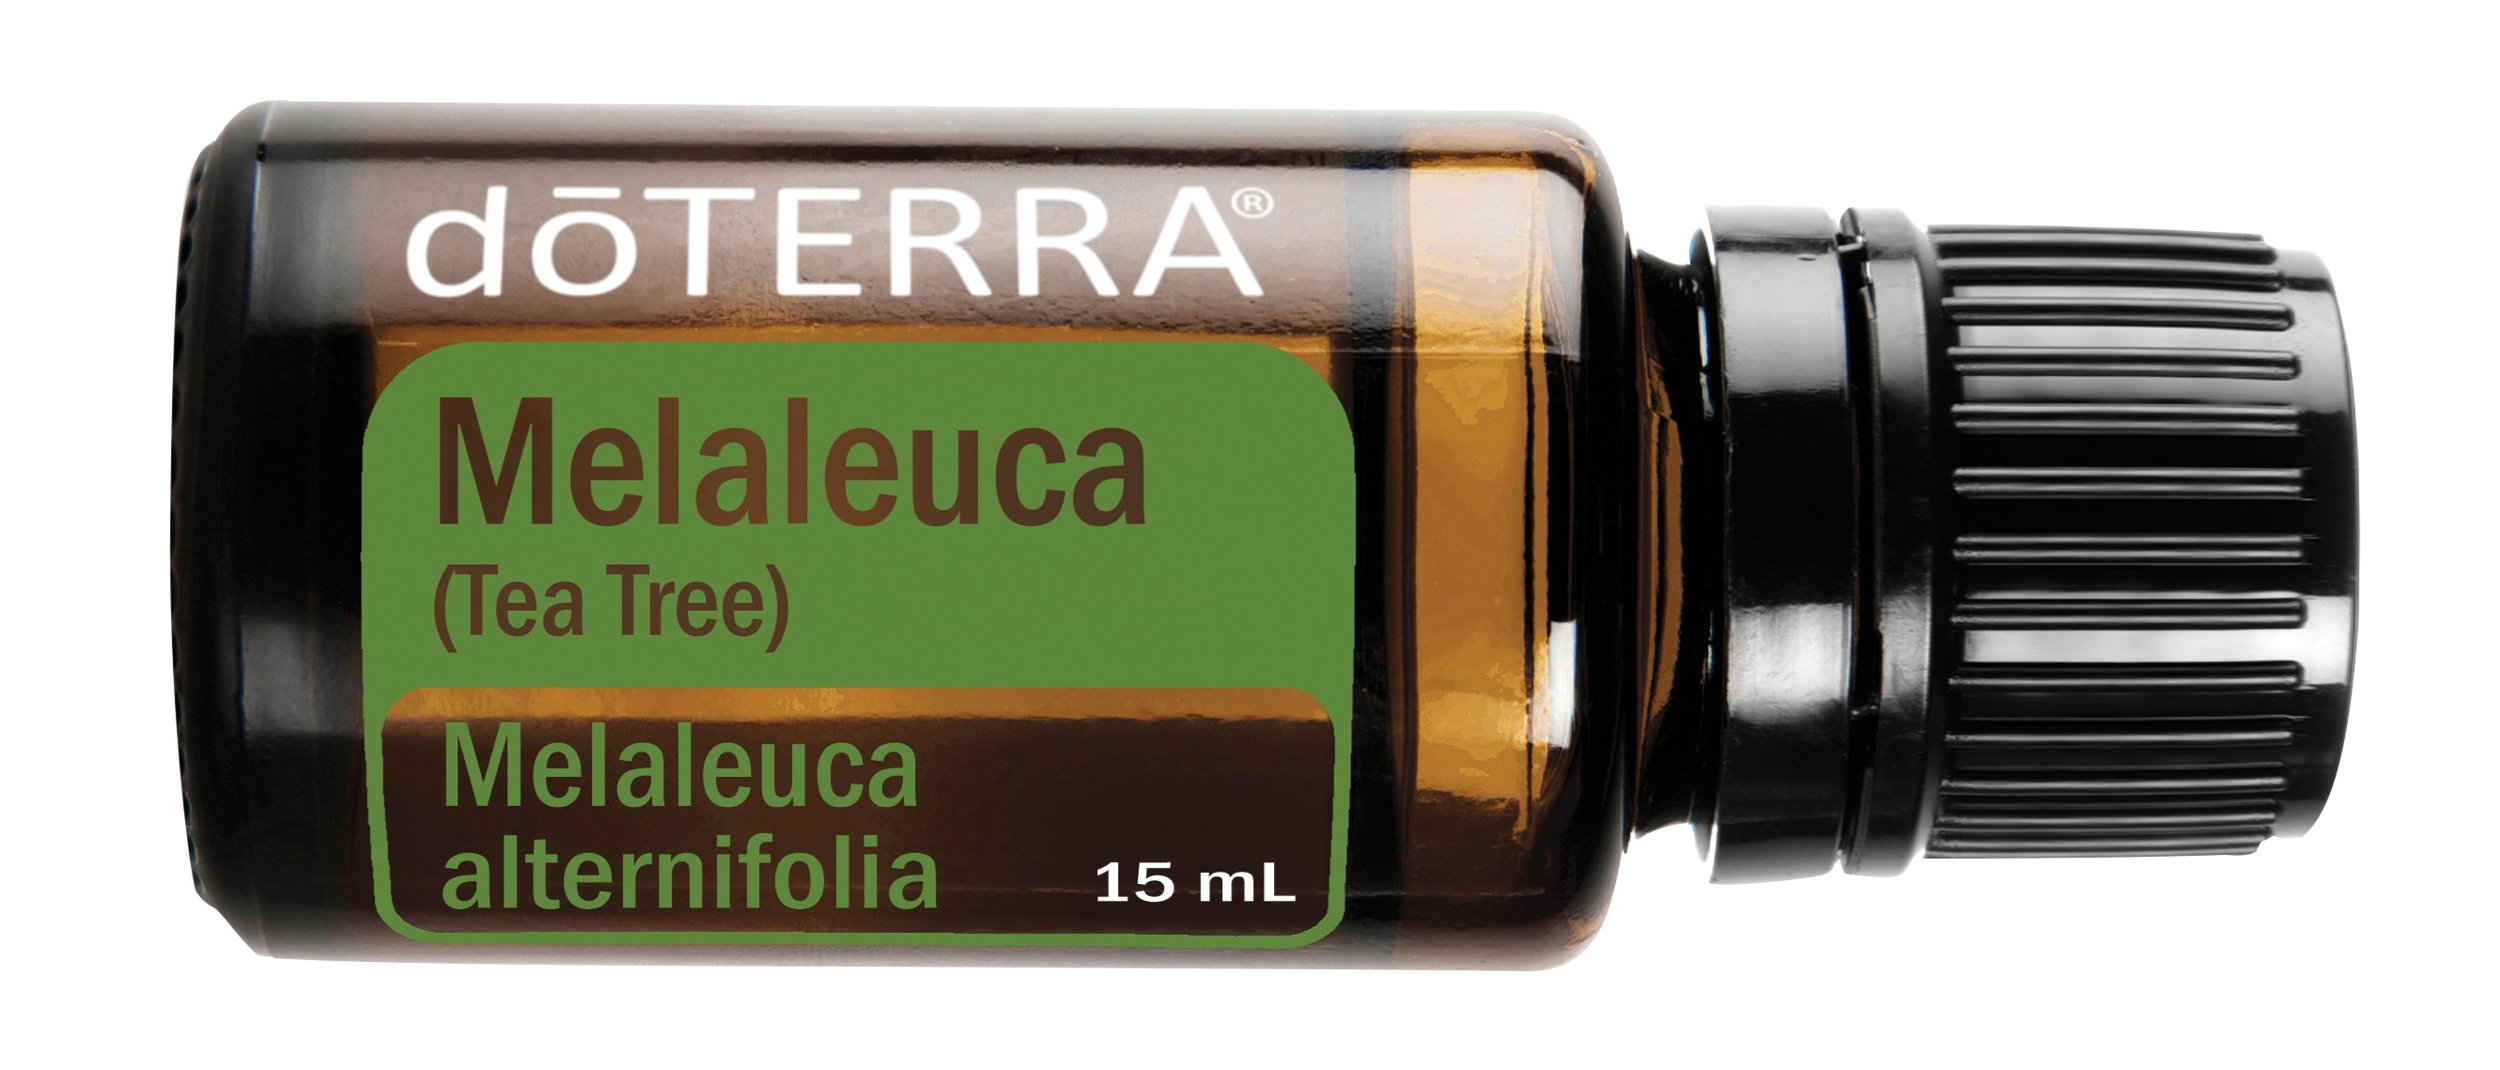 """Melaleuca    Say Goodbye To Razor Burn!  Apply after shaving to prevent any skin irritation. You can also mix Melaleuca with a bottle of fractionated coconut oil for a great facial moisturiser. Consider also mixing with Lavender or Frankincense for added benefit.  Add """"Oomph"""" To Your Lotion . Help soothe your skin by placing 1 drop of Melaleuca essential oil in your moisturiser during your morning and night skin routine. You can also apply to skin blemishes and rashes as part of a daily cleansing program.  Bathroom Cleaner.  Combine 10 drops of Melaleuca with ½ cup baking soda and ¼ cup vinegar to clean the toilet.  Refresh Your Wash . Add a couple drops of Melaleuca to laundry detergent to get rid of any musty smells caused by poor ventilation.  Homemade Baby Wipes.  Cut a paper towel roll in half and place it in a storage container with 2 cups warm water, 2 tablespoons fractionated coconut oil and 3 drops each of Melaleuca and Lavender. When the liquid is absorbed, remove the cardboard roll and pull wipes from the centre.  For When Soap Won't Do It.  Melaleuca is great for removing permanent marker from skin.  Baby Bottom Remedy.  Mix with Fractionated Coconut Oil, Lavender, and Frankincense to make a diaper paste for baby's irritated skin.  Too Much Fun In The Sun?  Apply to the skin during your family vacation or after a long day in the sun.  Sleep Feeling Clean.  Spray Melaleuca on your mattress pad when you change the sheets.  Handy For Hikers.  Take Melaleuca essential oil in your pack next time to take the off beaten trail. Melaleuca is a great cleansing agent for occasional scrapes and other skin irritations.  Learn From The Past.  Historically, Melaleuca oil was used as a cleanser for the face and to deal with periodic skin and toenail challenges.  Boost Your Immune Function.  Diffuse Melaleuca or rub it on the bottom of your feet. Combine with On Guard for even more immune support.  Chemical-Free Cleaning.  Dilute 8-10 drops with water in a spray bottle t"""